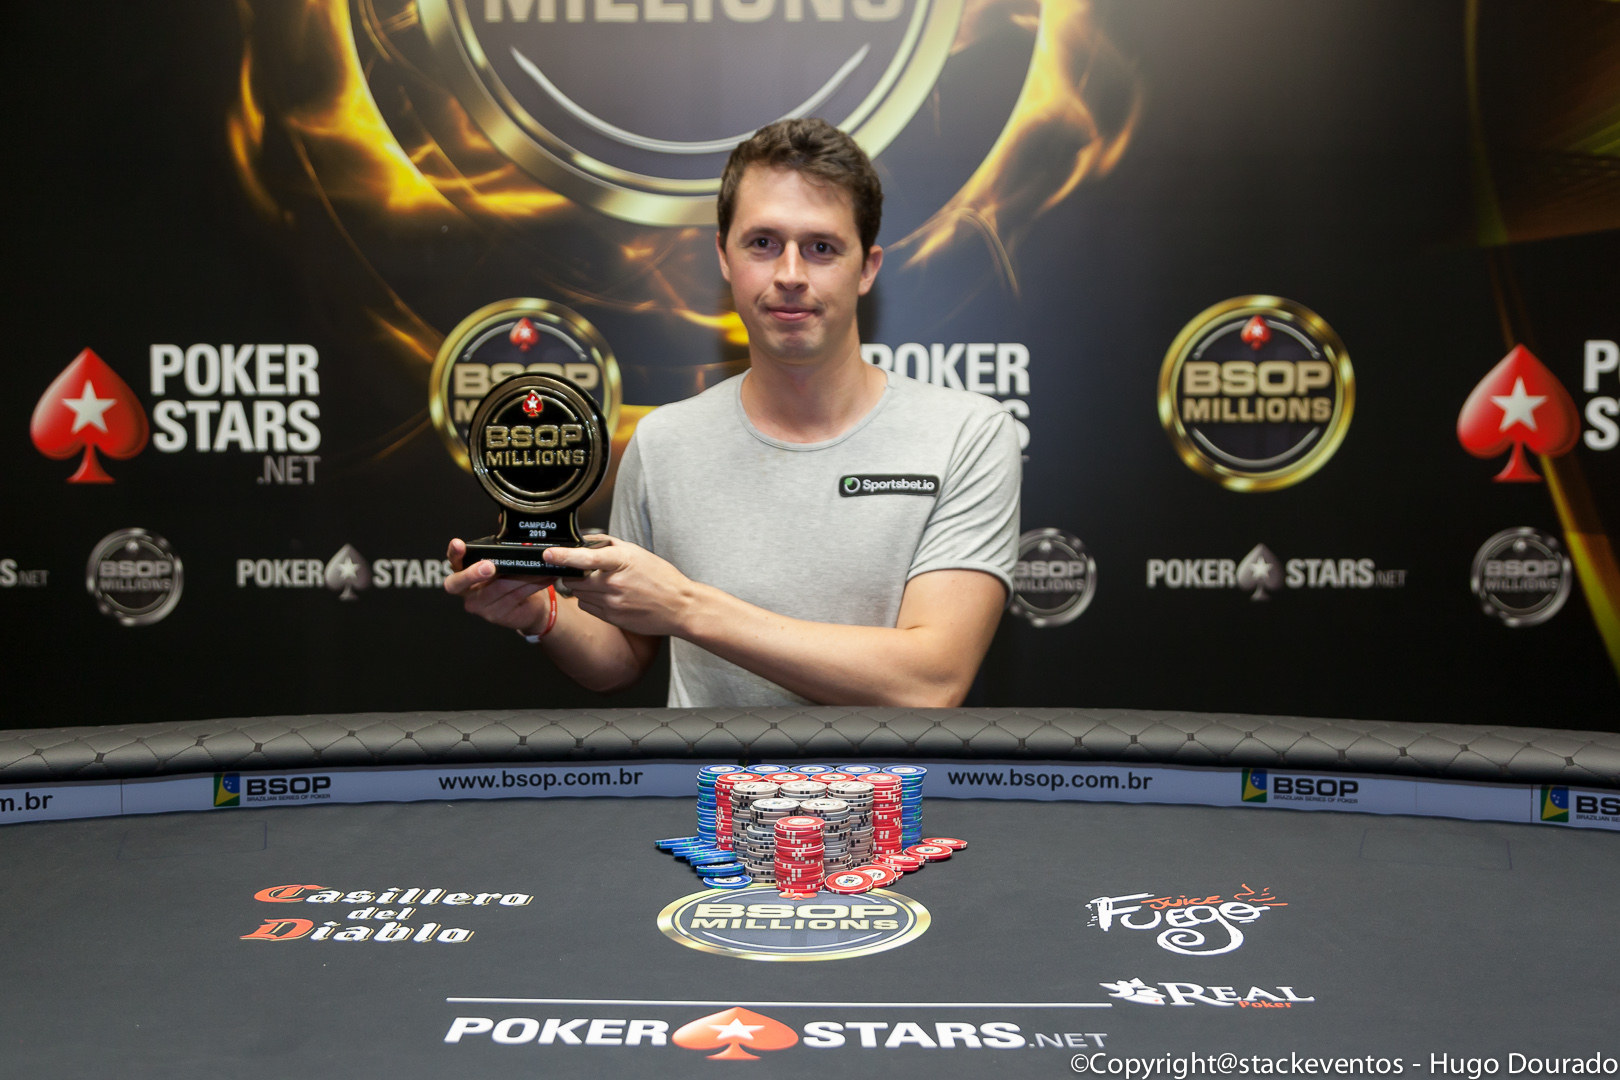 Bruno Volkmann campeão do Super High Roller do BSOP Millions